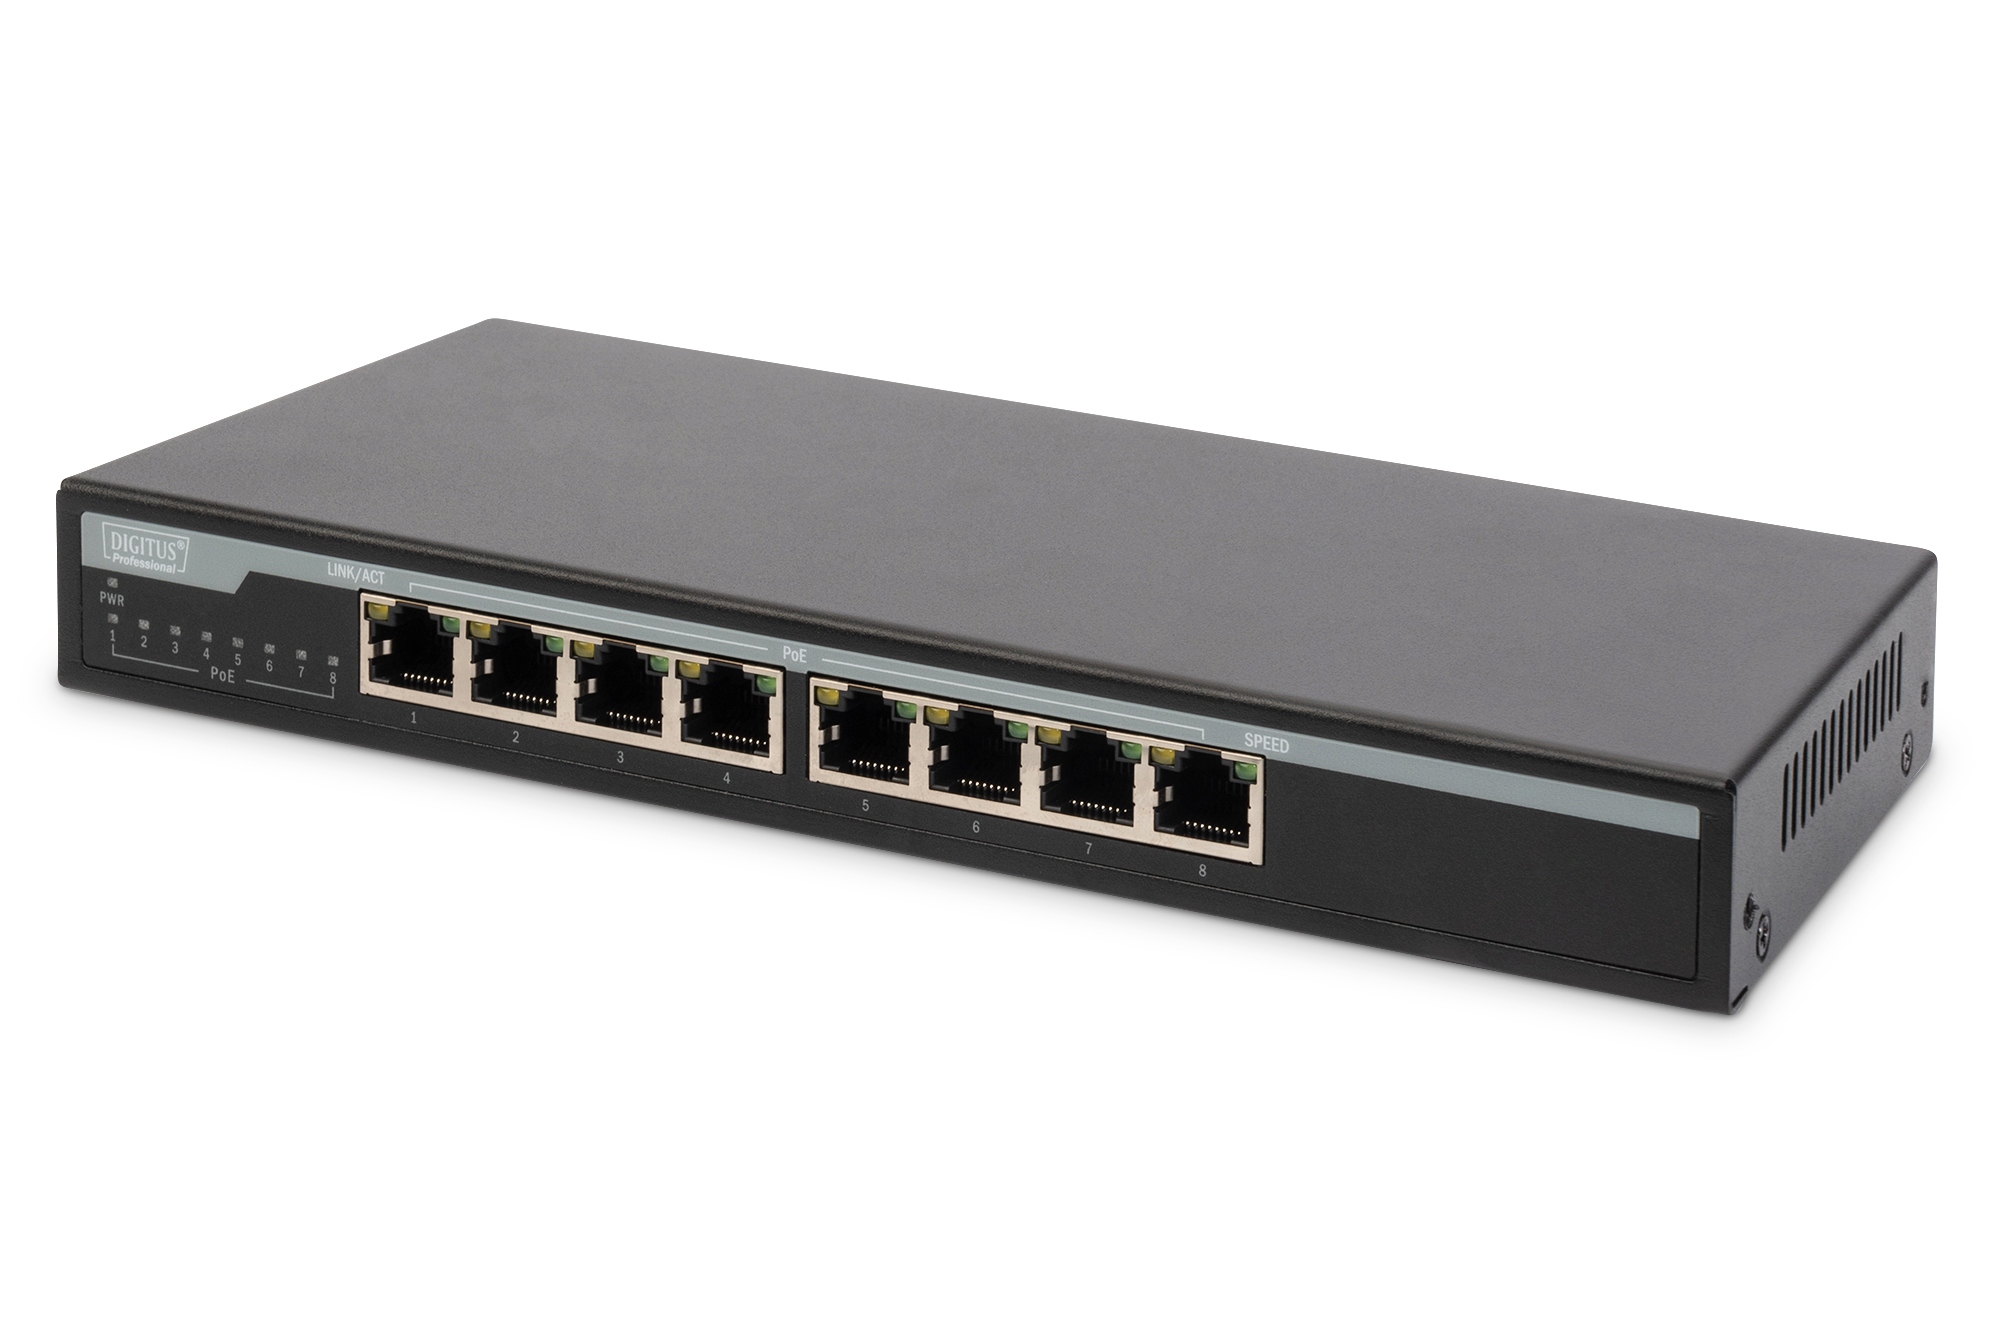 Digitus 8-Port 10/100/1000 Mbps PoE Gigabit Deskto